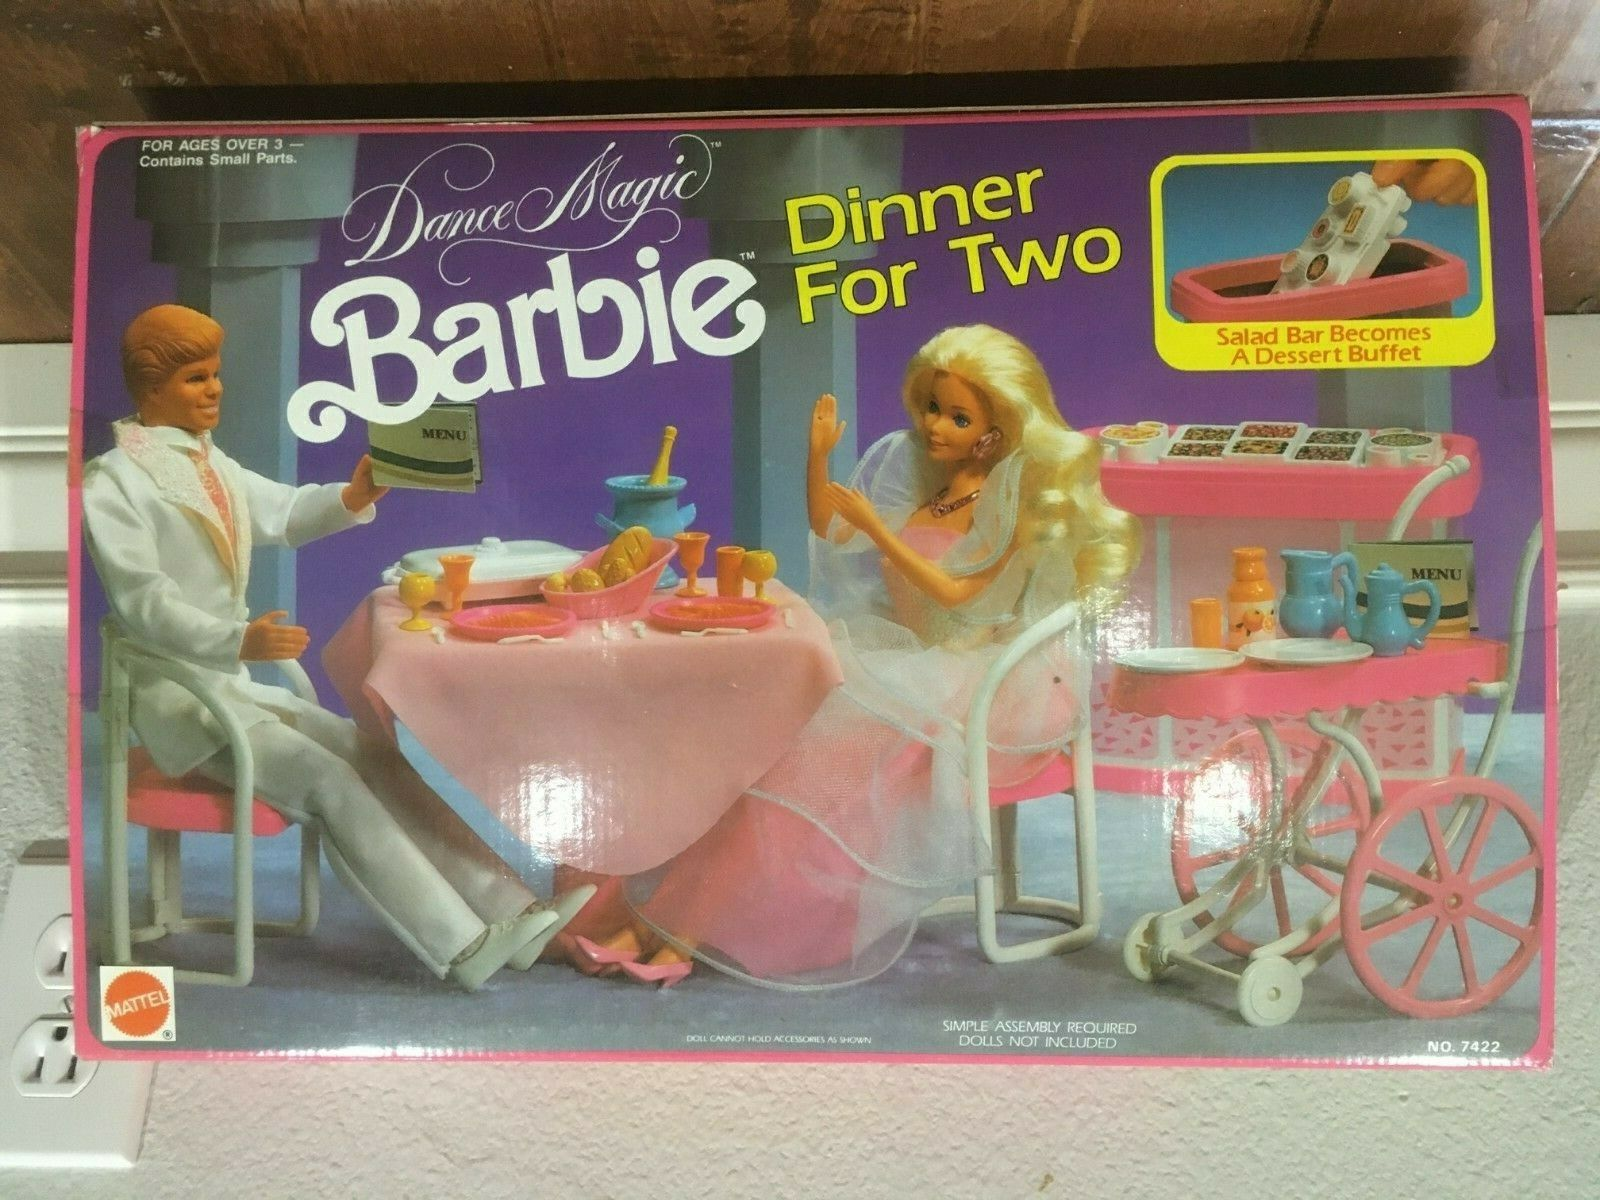 Dance Magic Barbie Dinner For Two Mattel no. 7422 from 1990